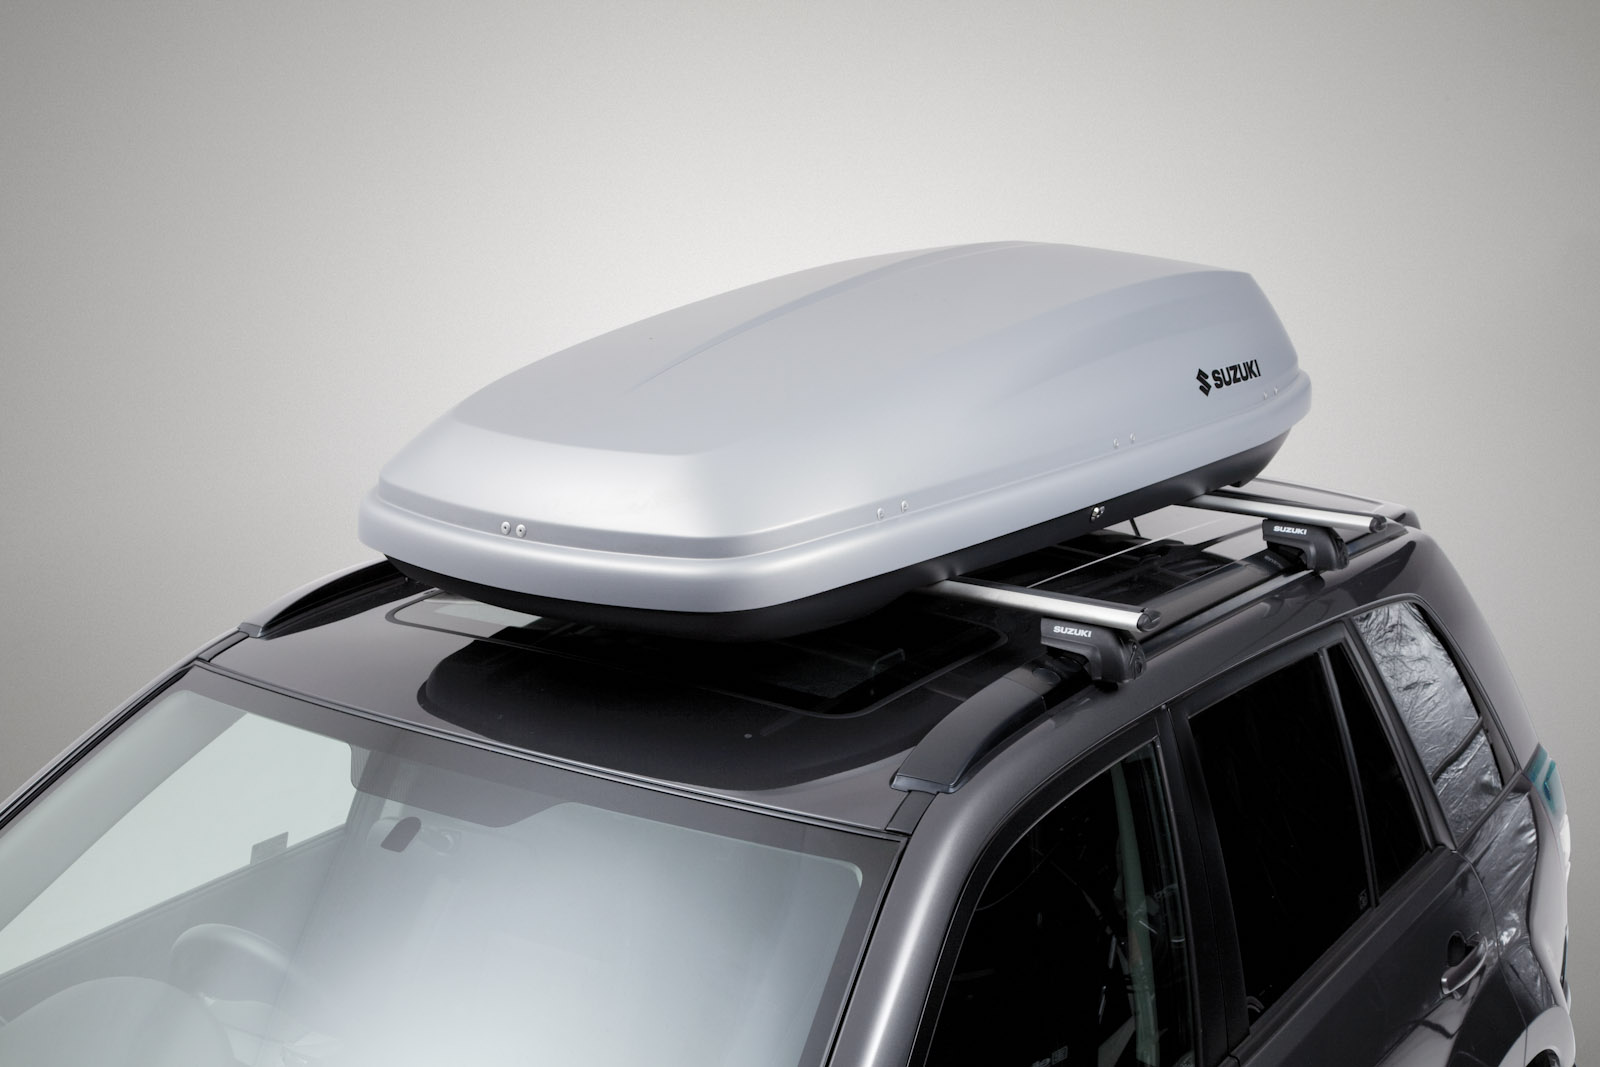 Sentinel Genuine Suzuki Grand Vitara 3-door Car Lockable Roof Box New  990E0-59J43-